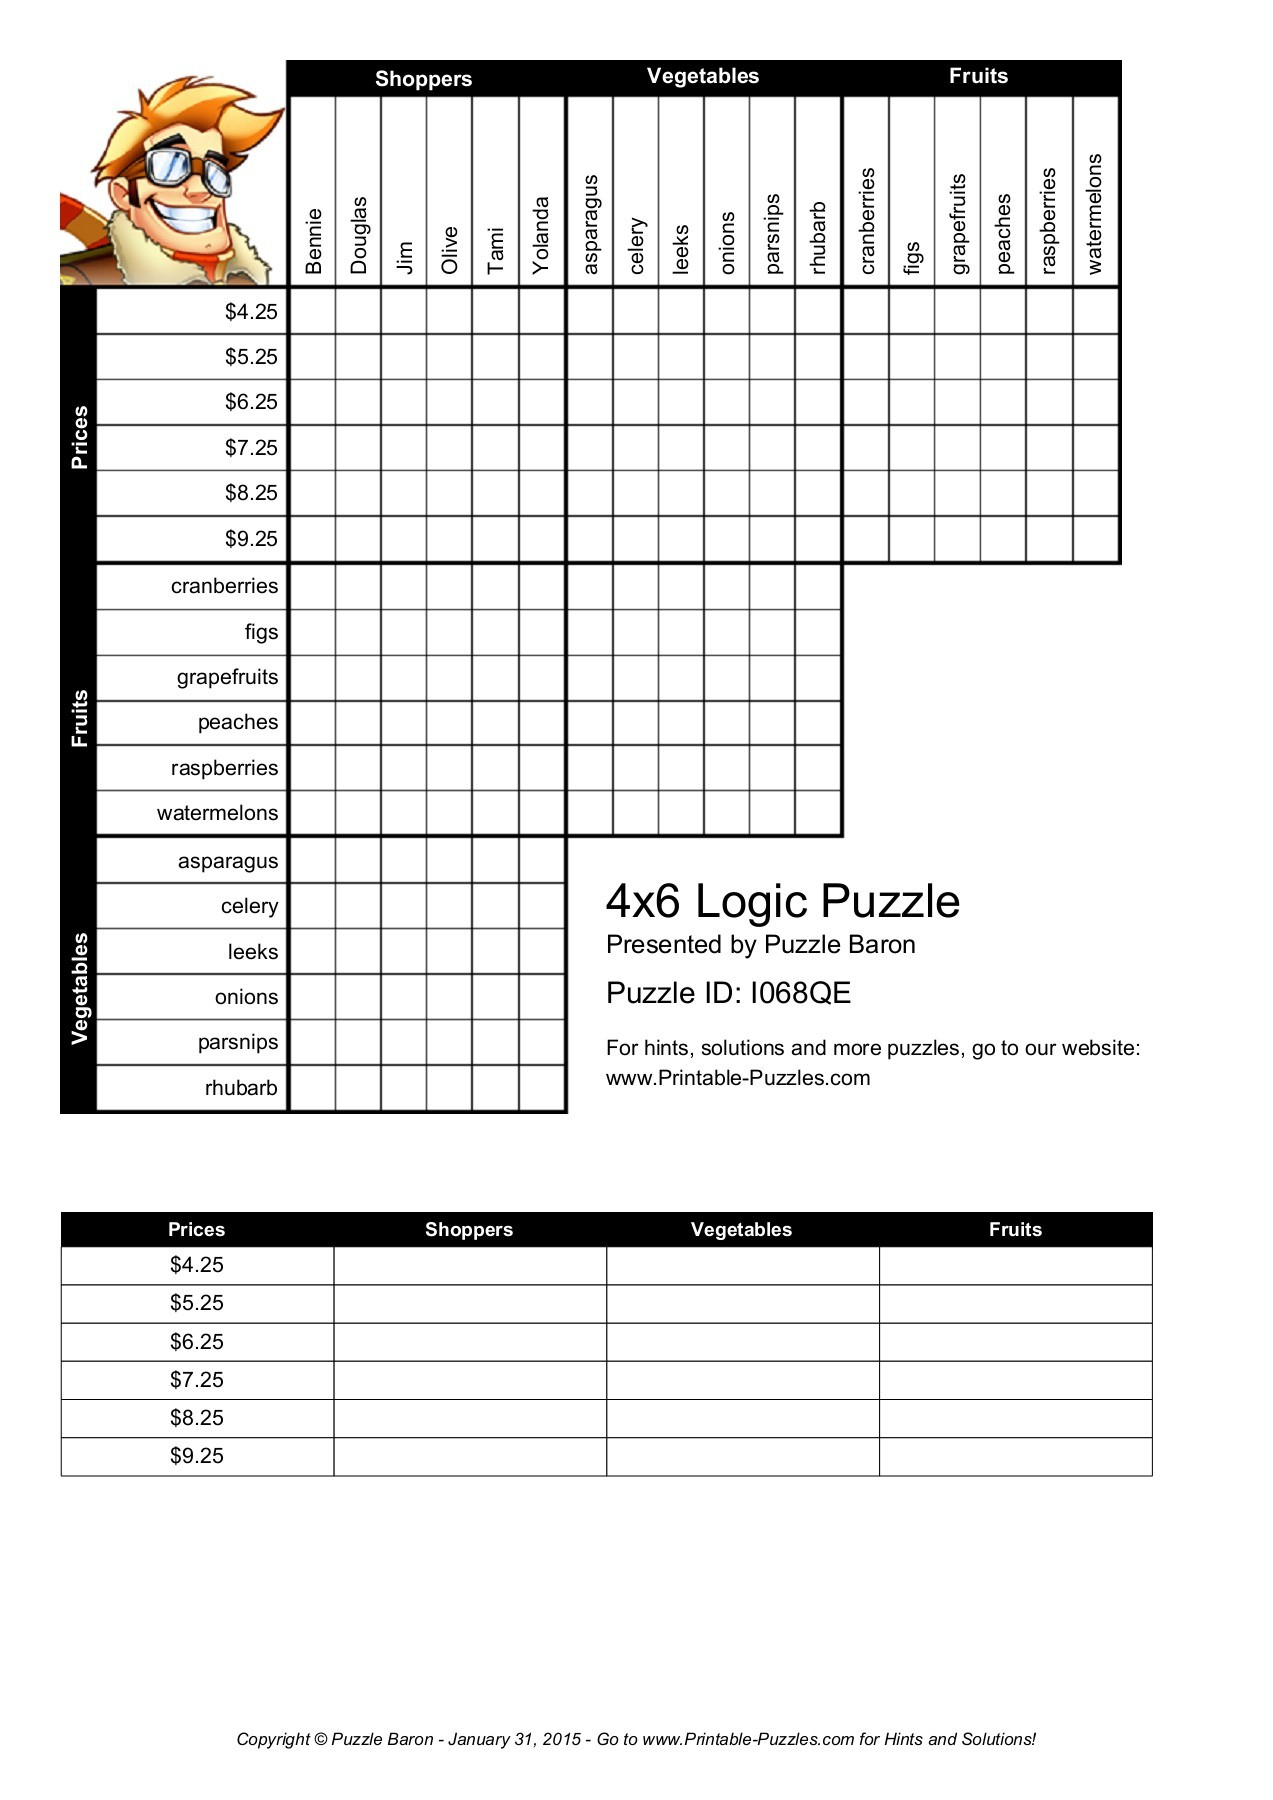 4X6 Logic Puzzle - Logic Puzzles - Play Online Or Print  Pages 1 - Printable Logic Puzzles Baron